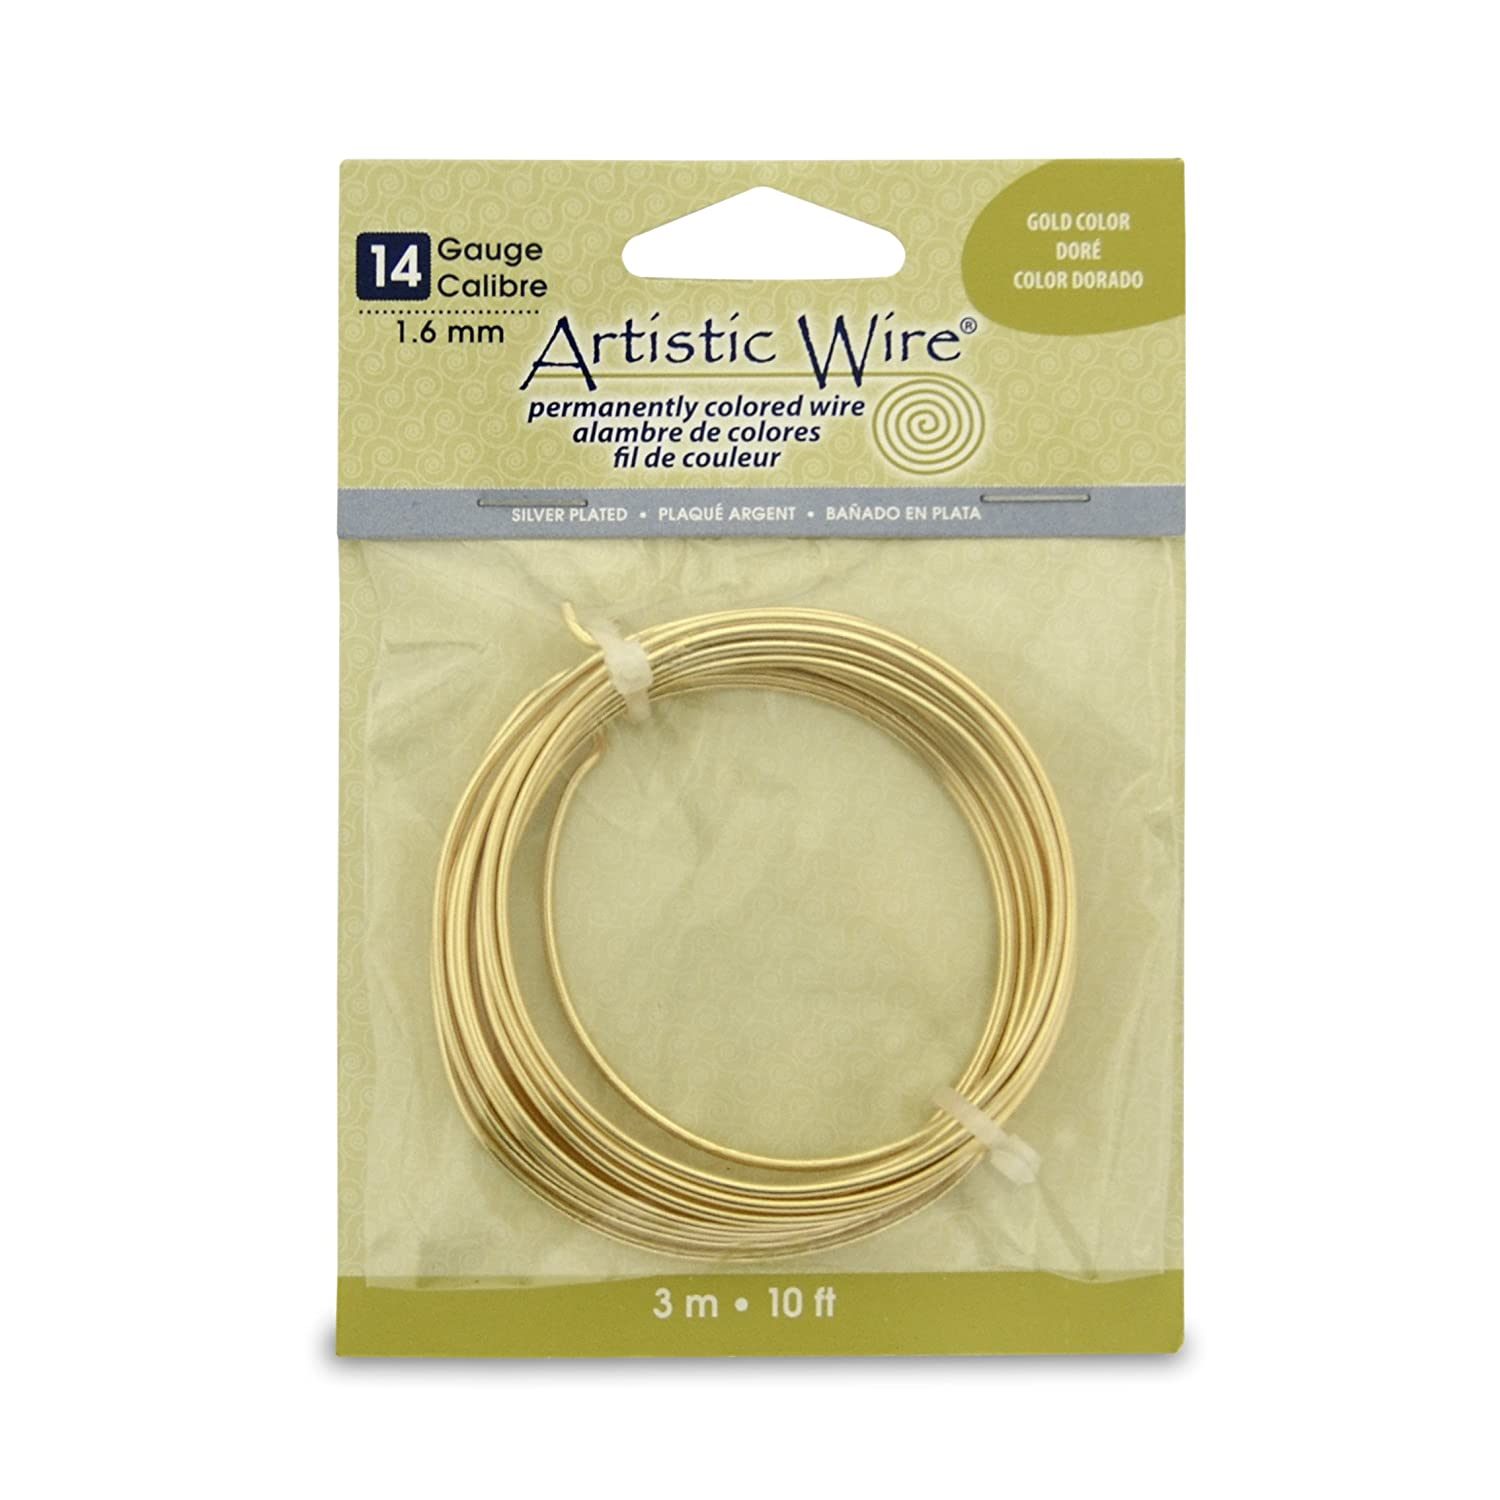 32.8 Feet Aluminum Wire for Craft//Jewelry Making and Wire Sculpting Black, 0.8MM//20 Gauge from Craft Wire